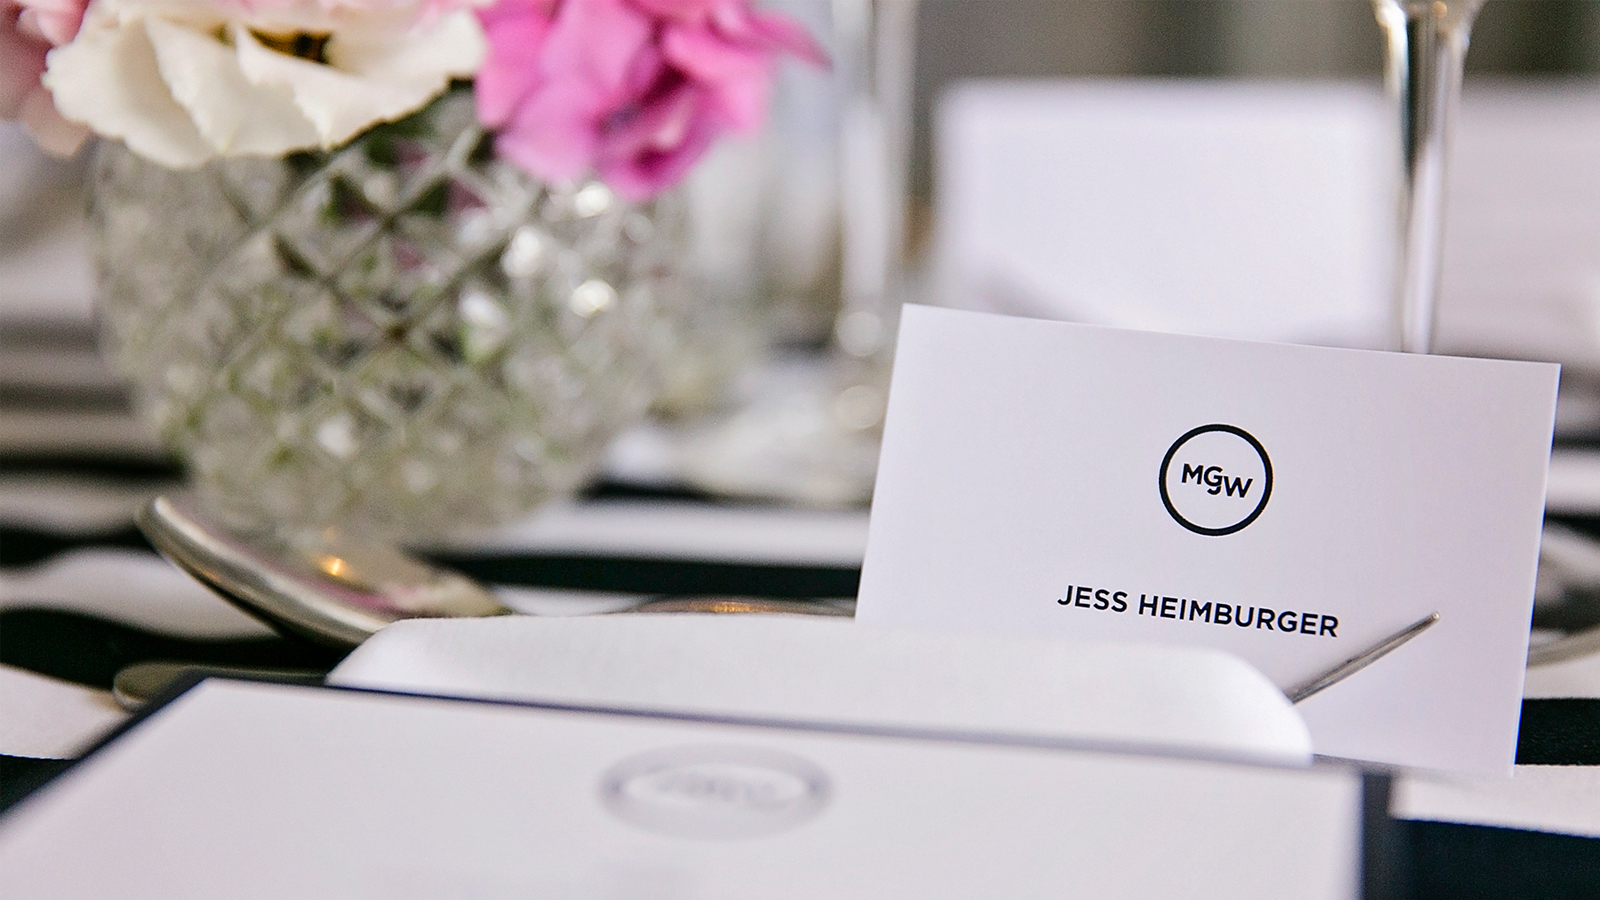 Wedding-Stationery-Place-Names-Designed-By-ALSO-Agency-1